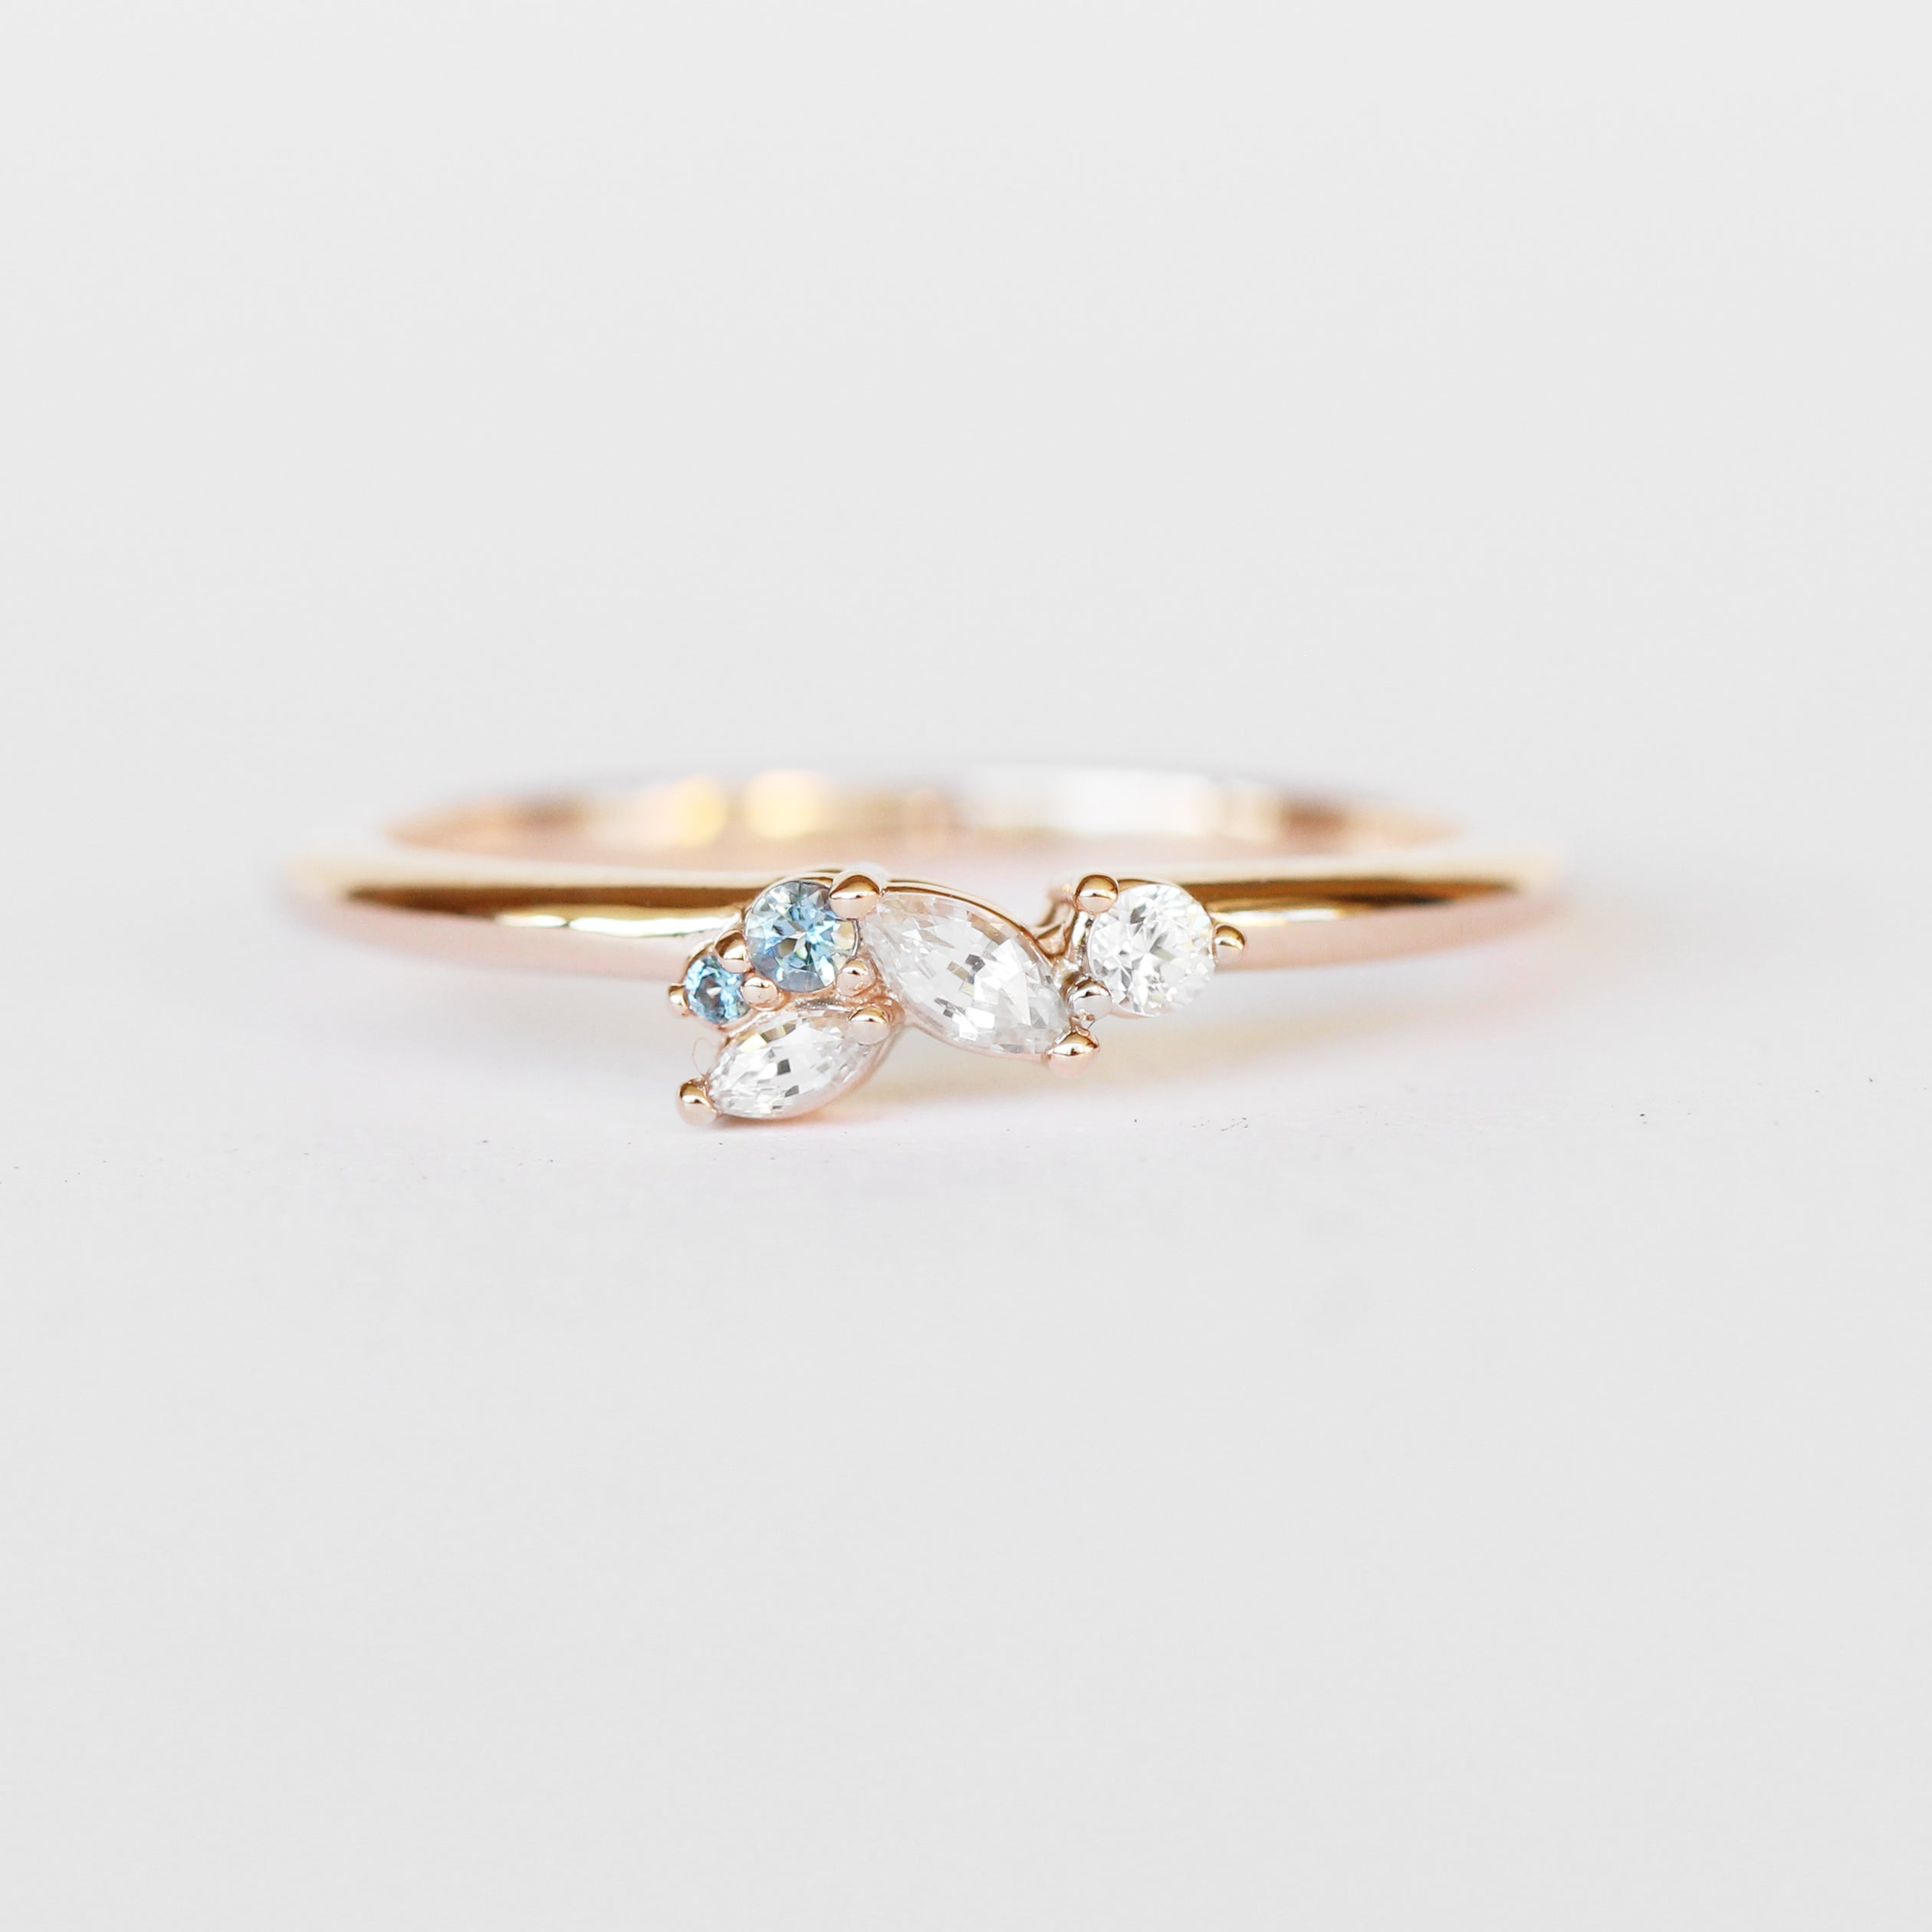 Anna Sapphire + Aquamarine Gemstone Cluster Stackable or Wedding Ring in 10k Rose Gold - Ready to Size and Ship - Celestial Diamonds ® by Midwinter Co.